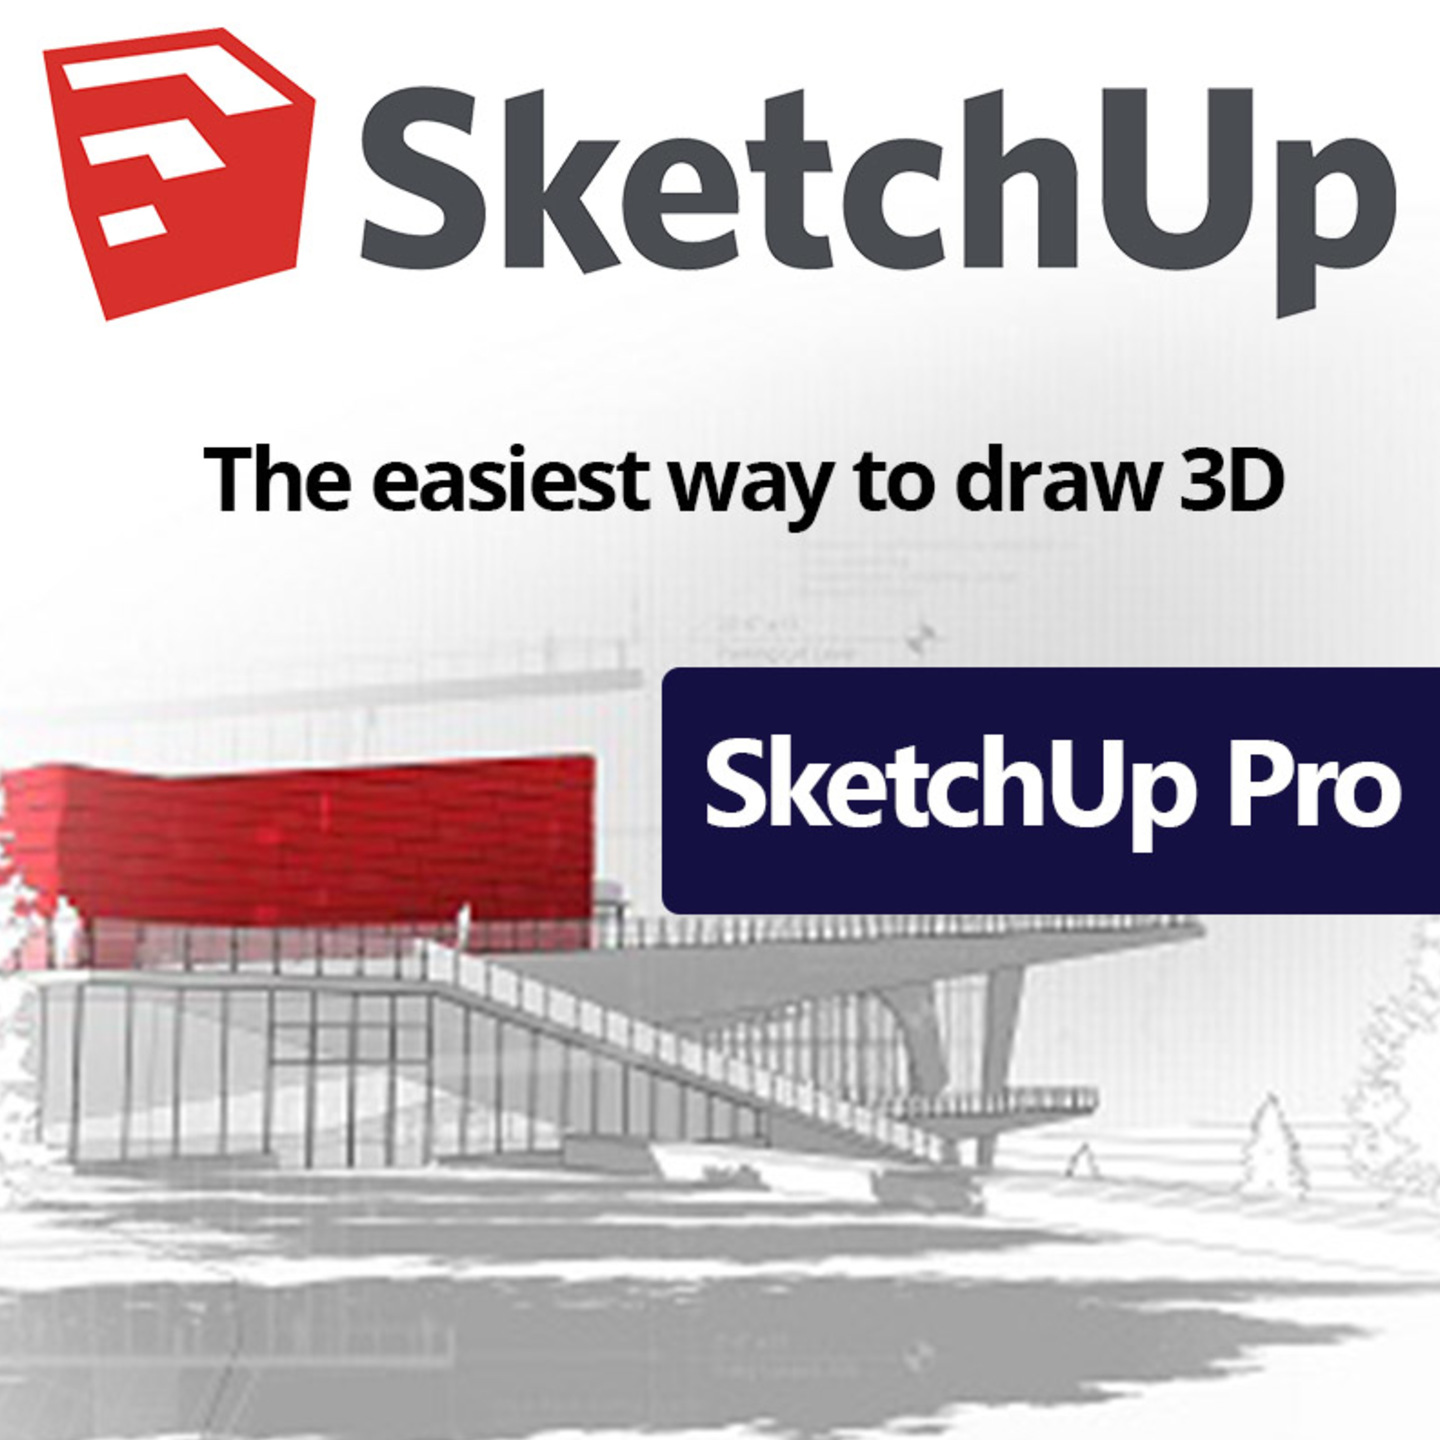 SketchUP Pro 2019 and Get $100 Training Credit